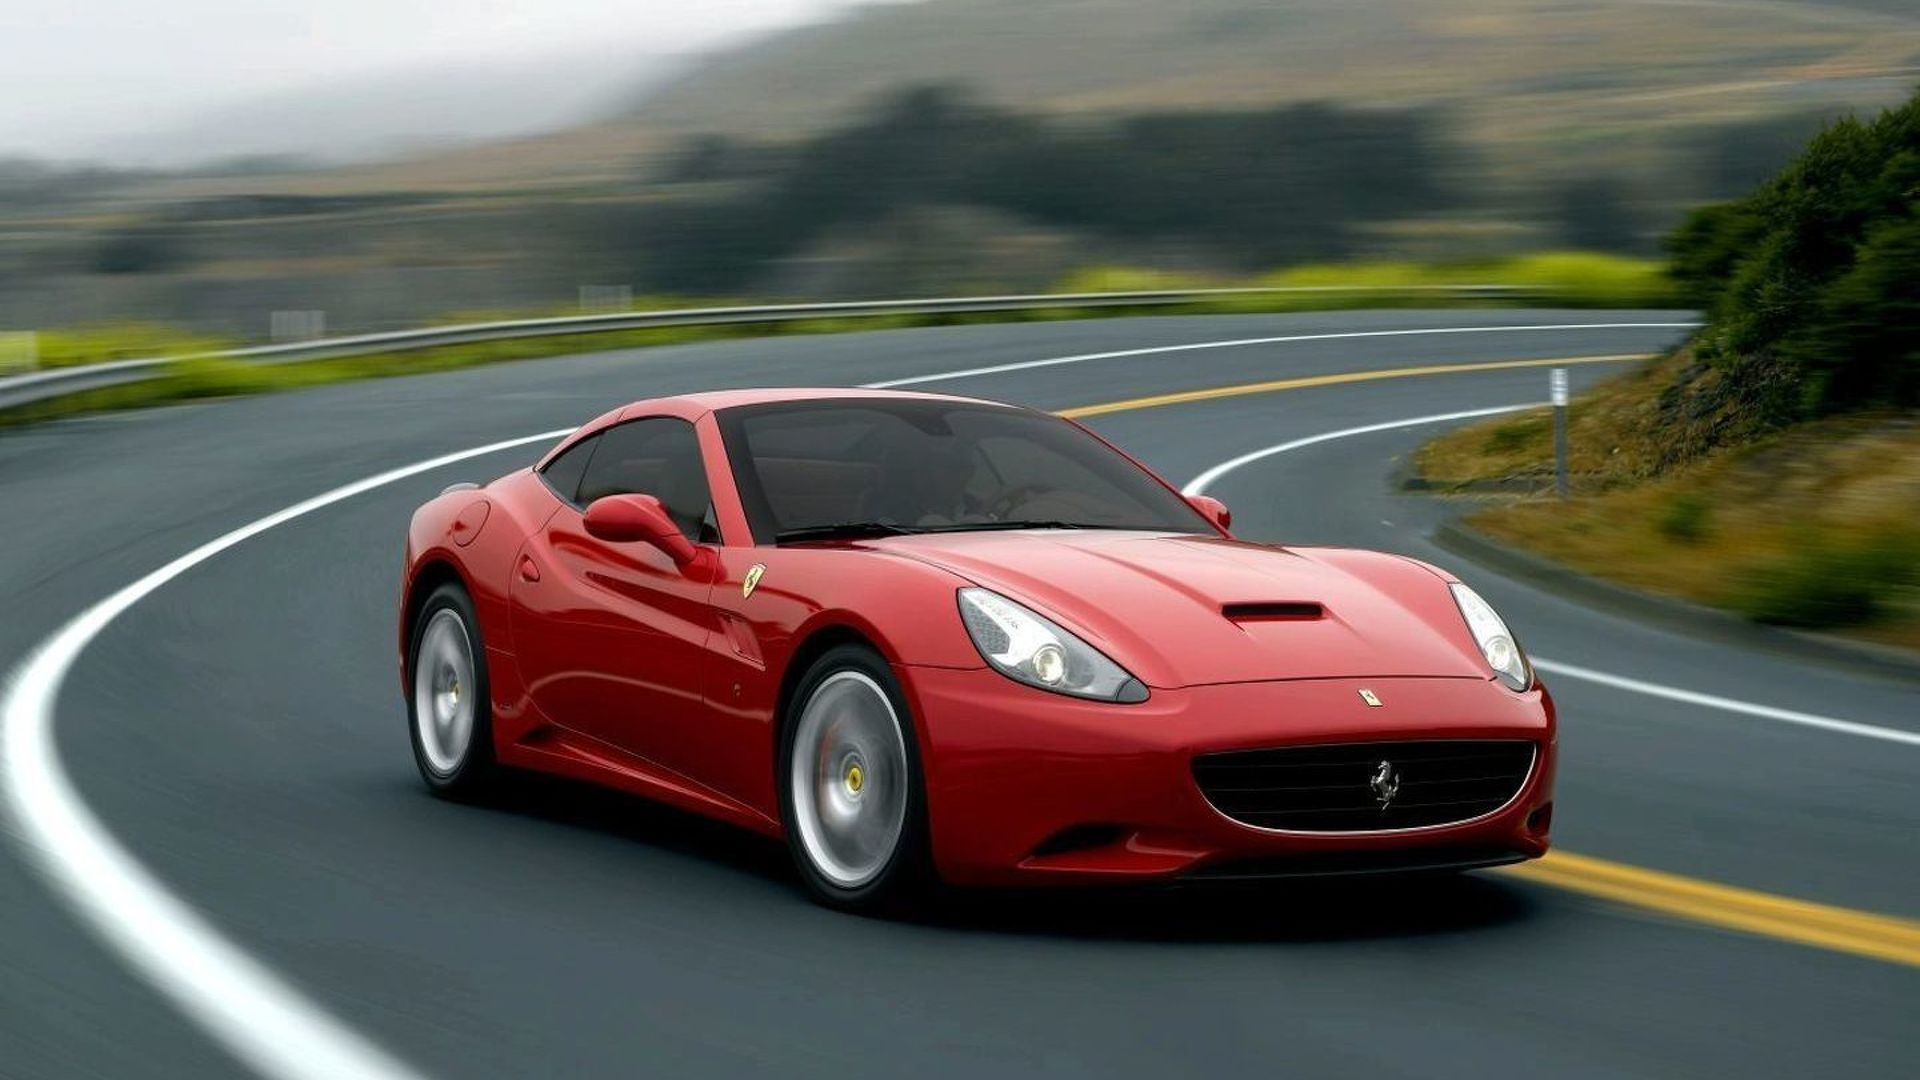 First UK Bound Ferrari California gets Special 'F1 CAL' Licence Plate